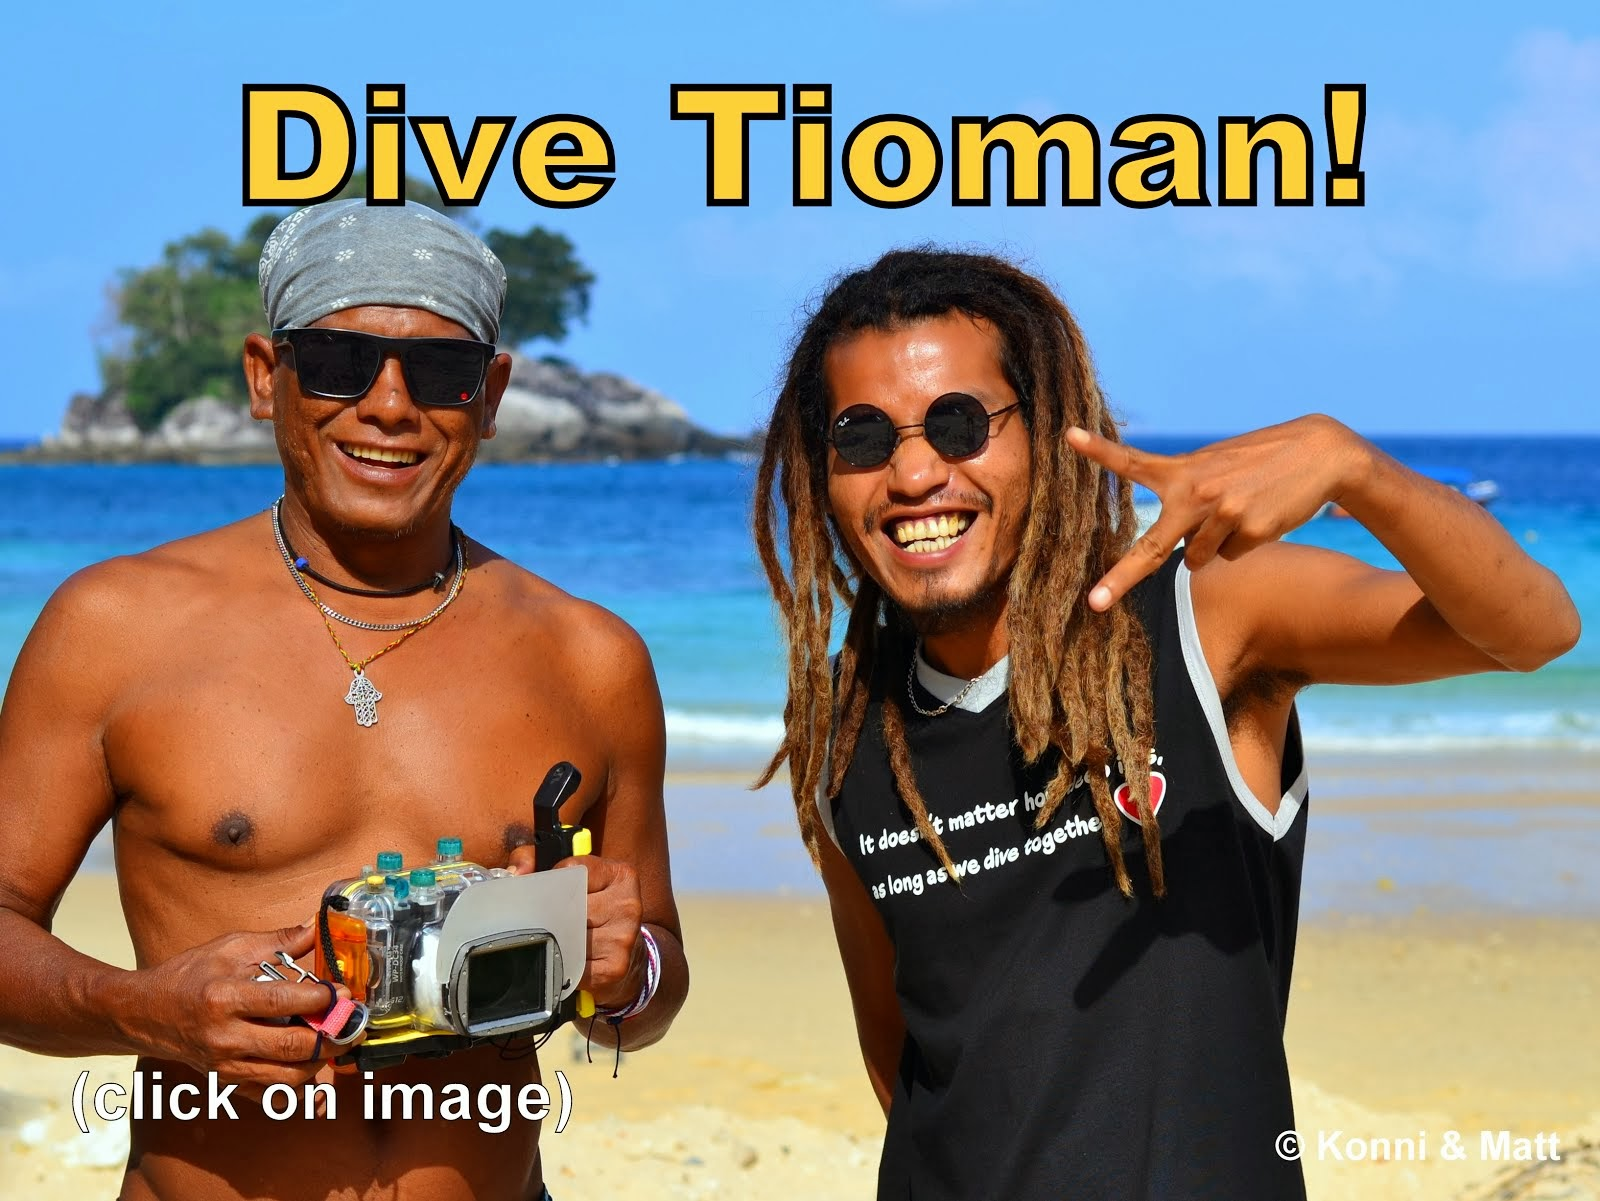 Dive Tioman - Click on Image for Details: